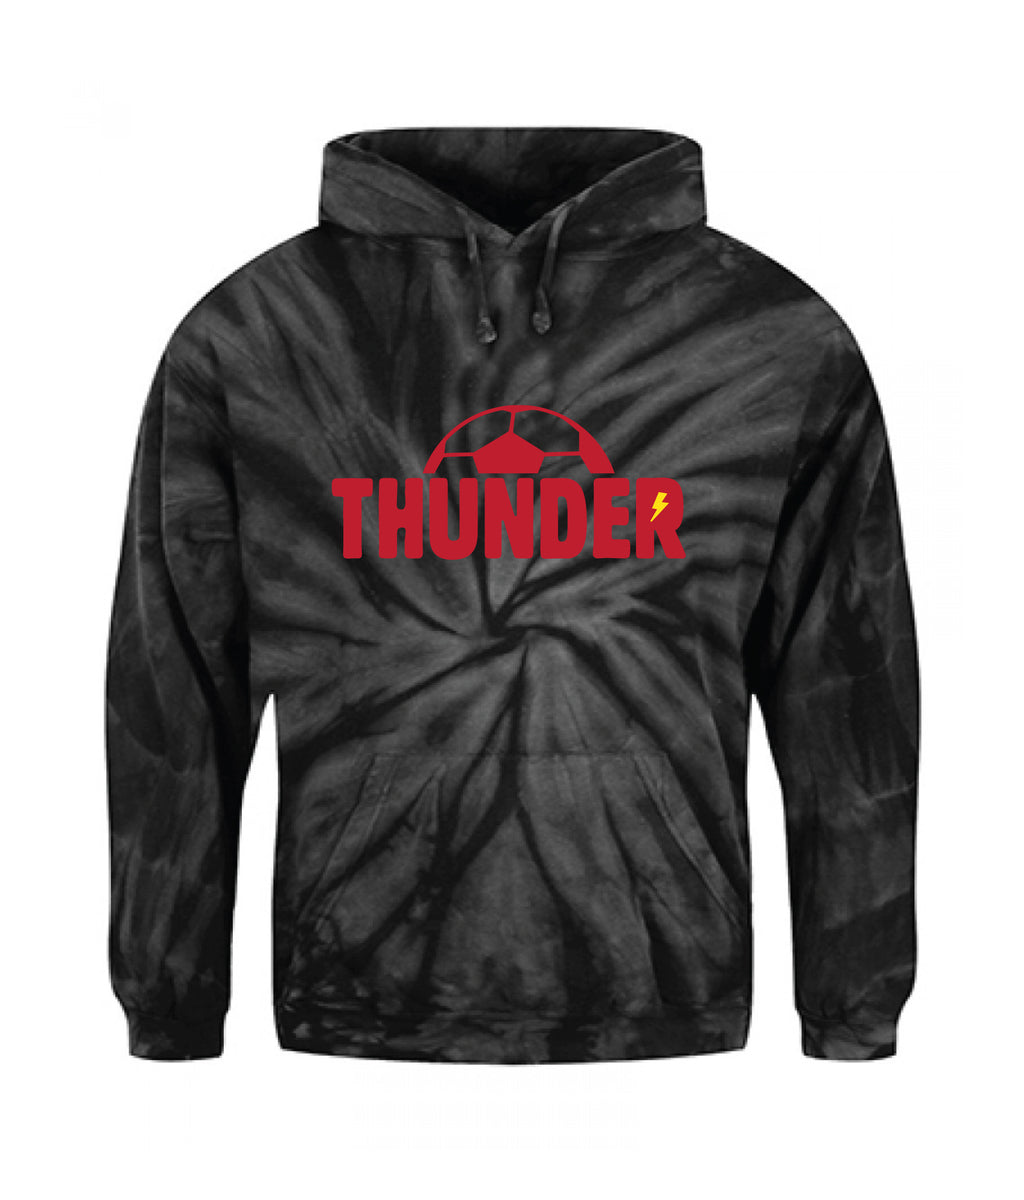 Boys Thunder Black Tie-Dye Hoodie- Adult Unisex and Youth